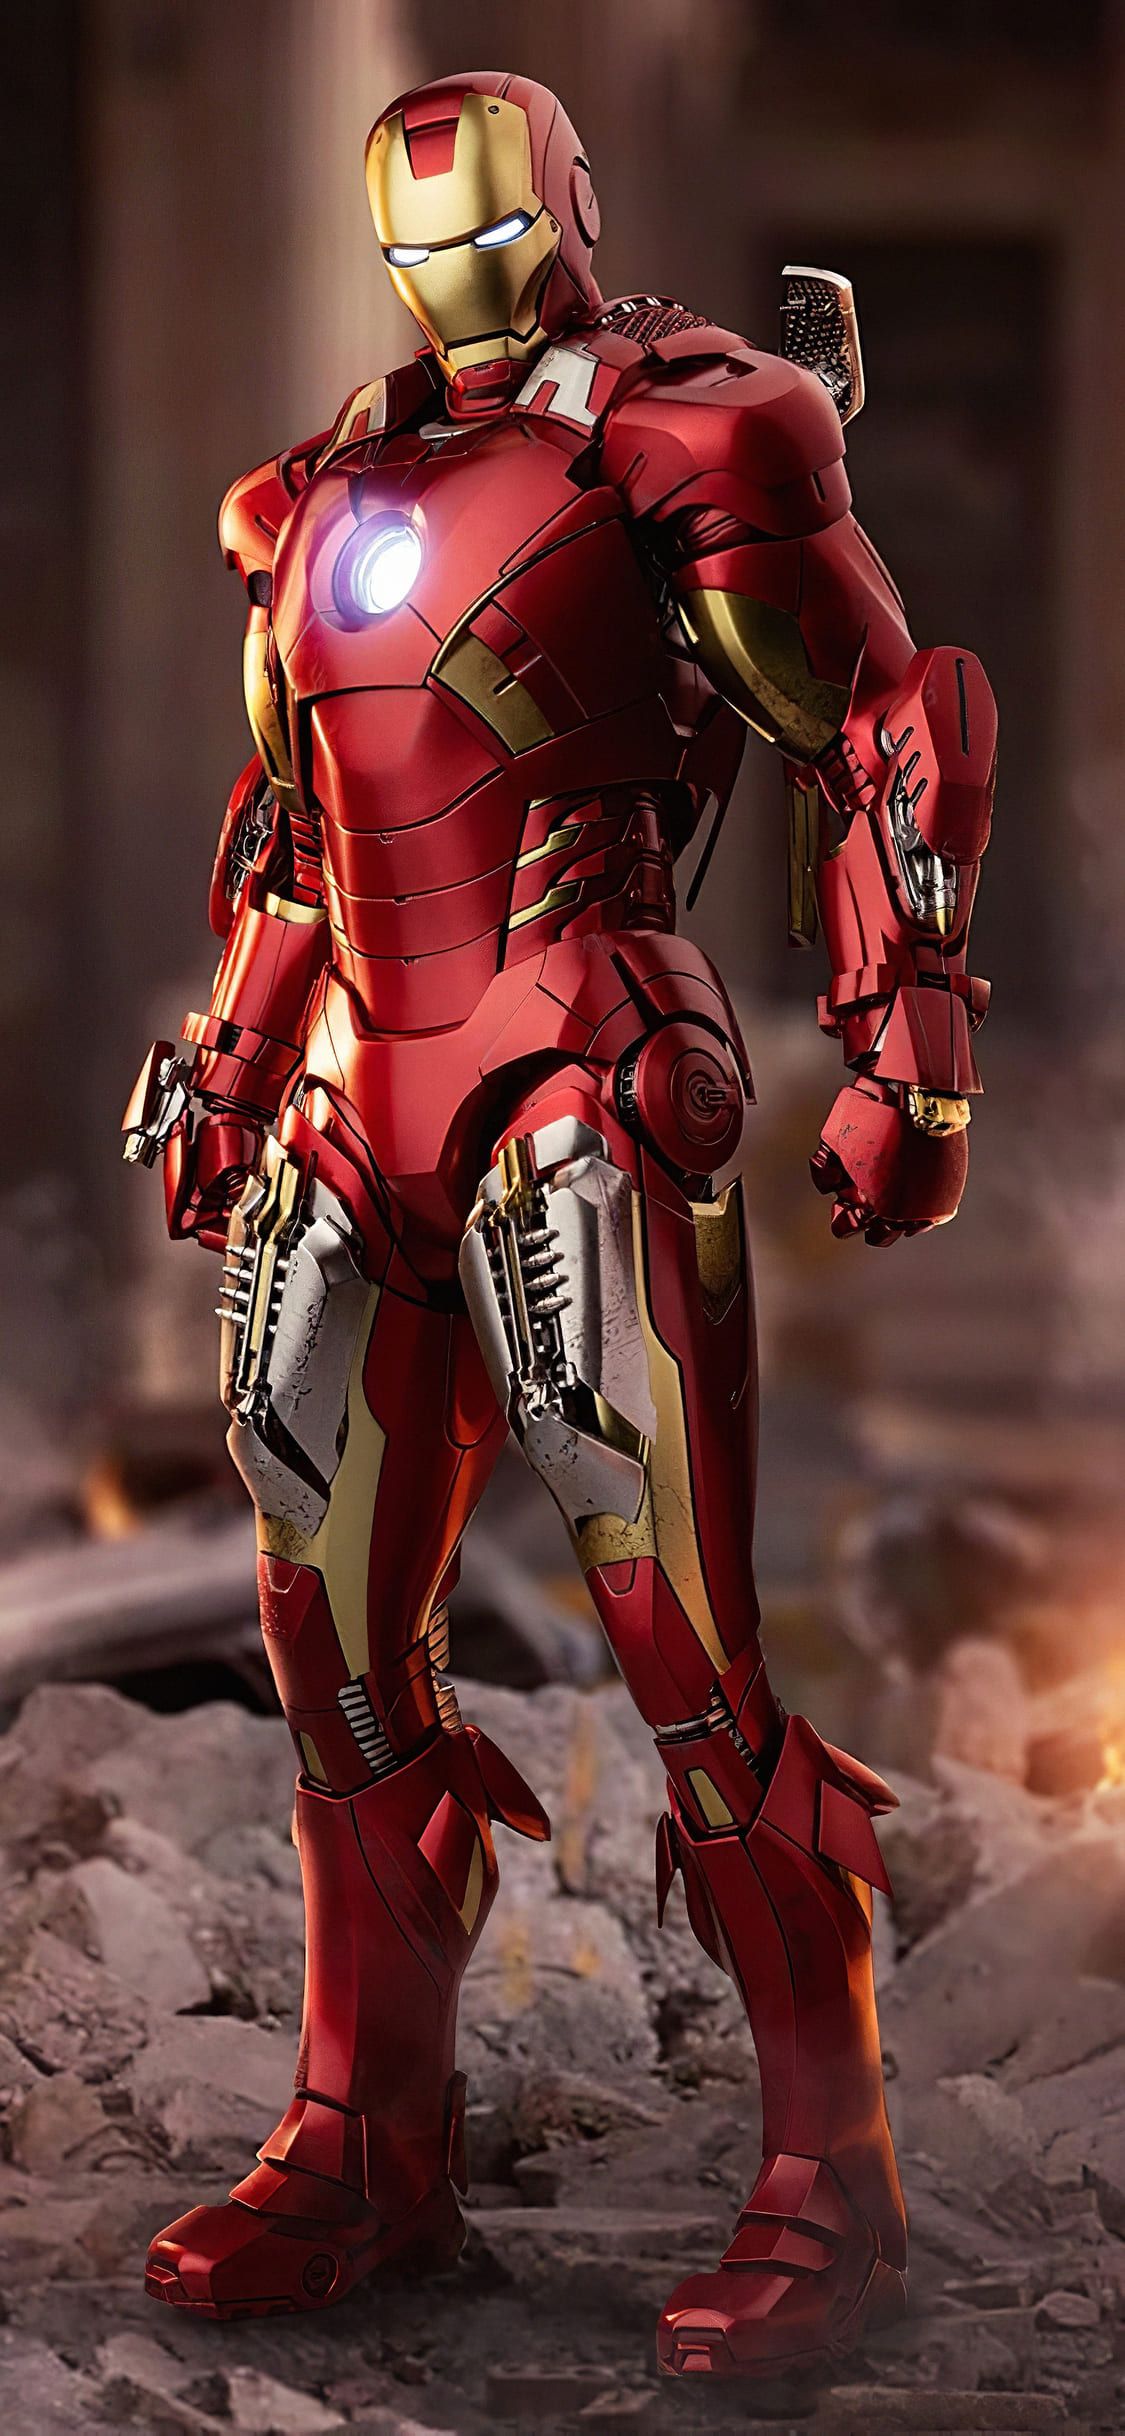 Top 85 Best Iron Man Wallpapers 4k Hd